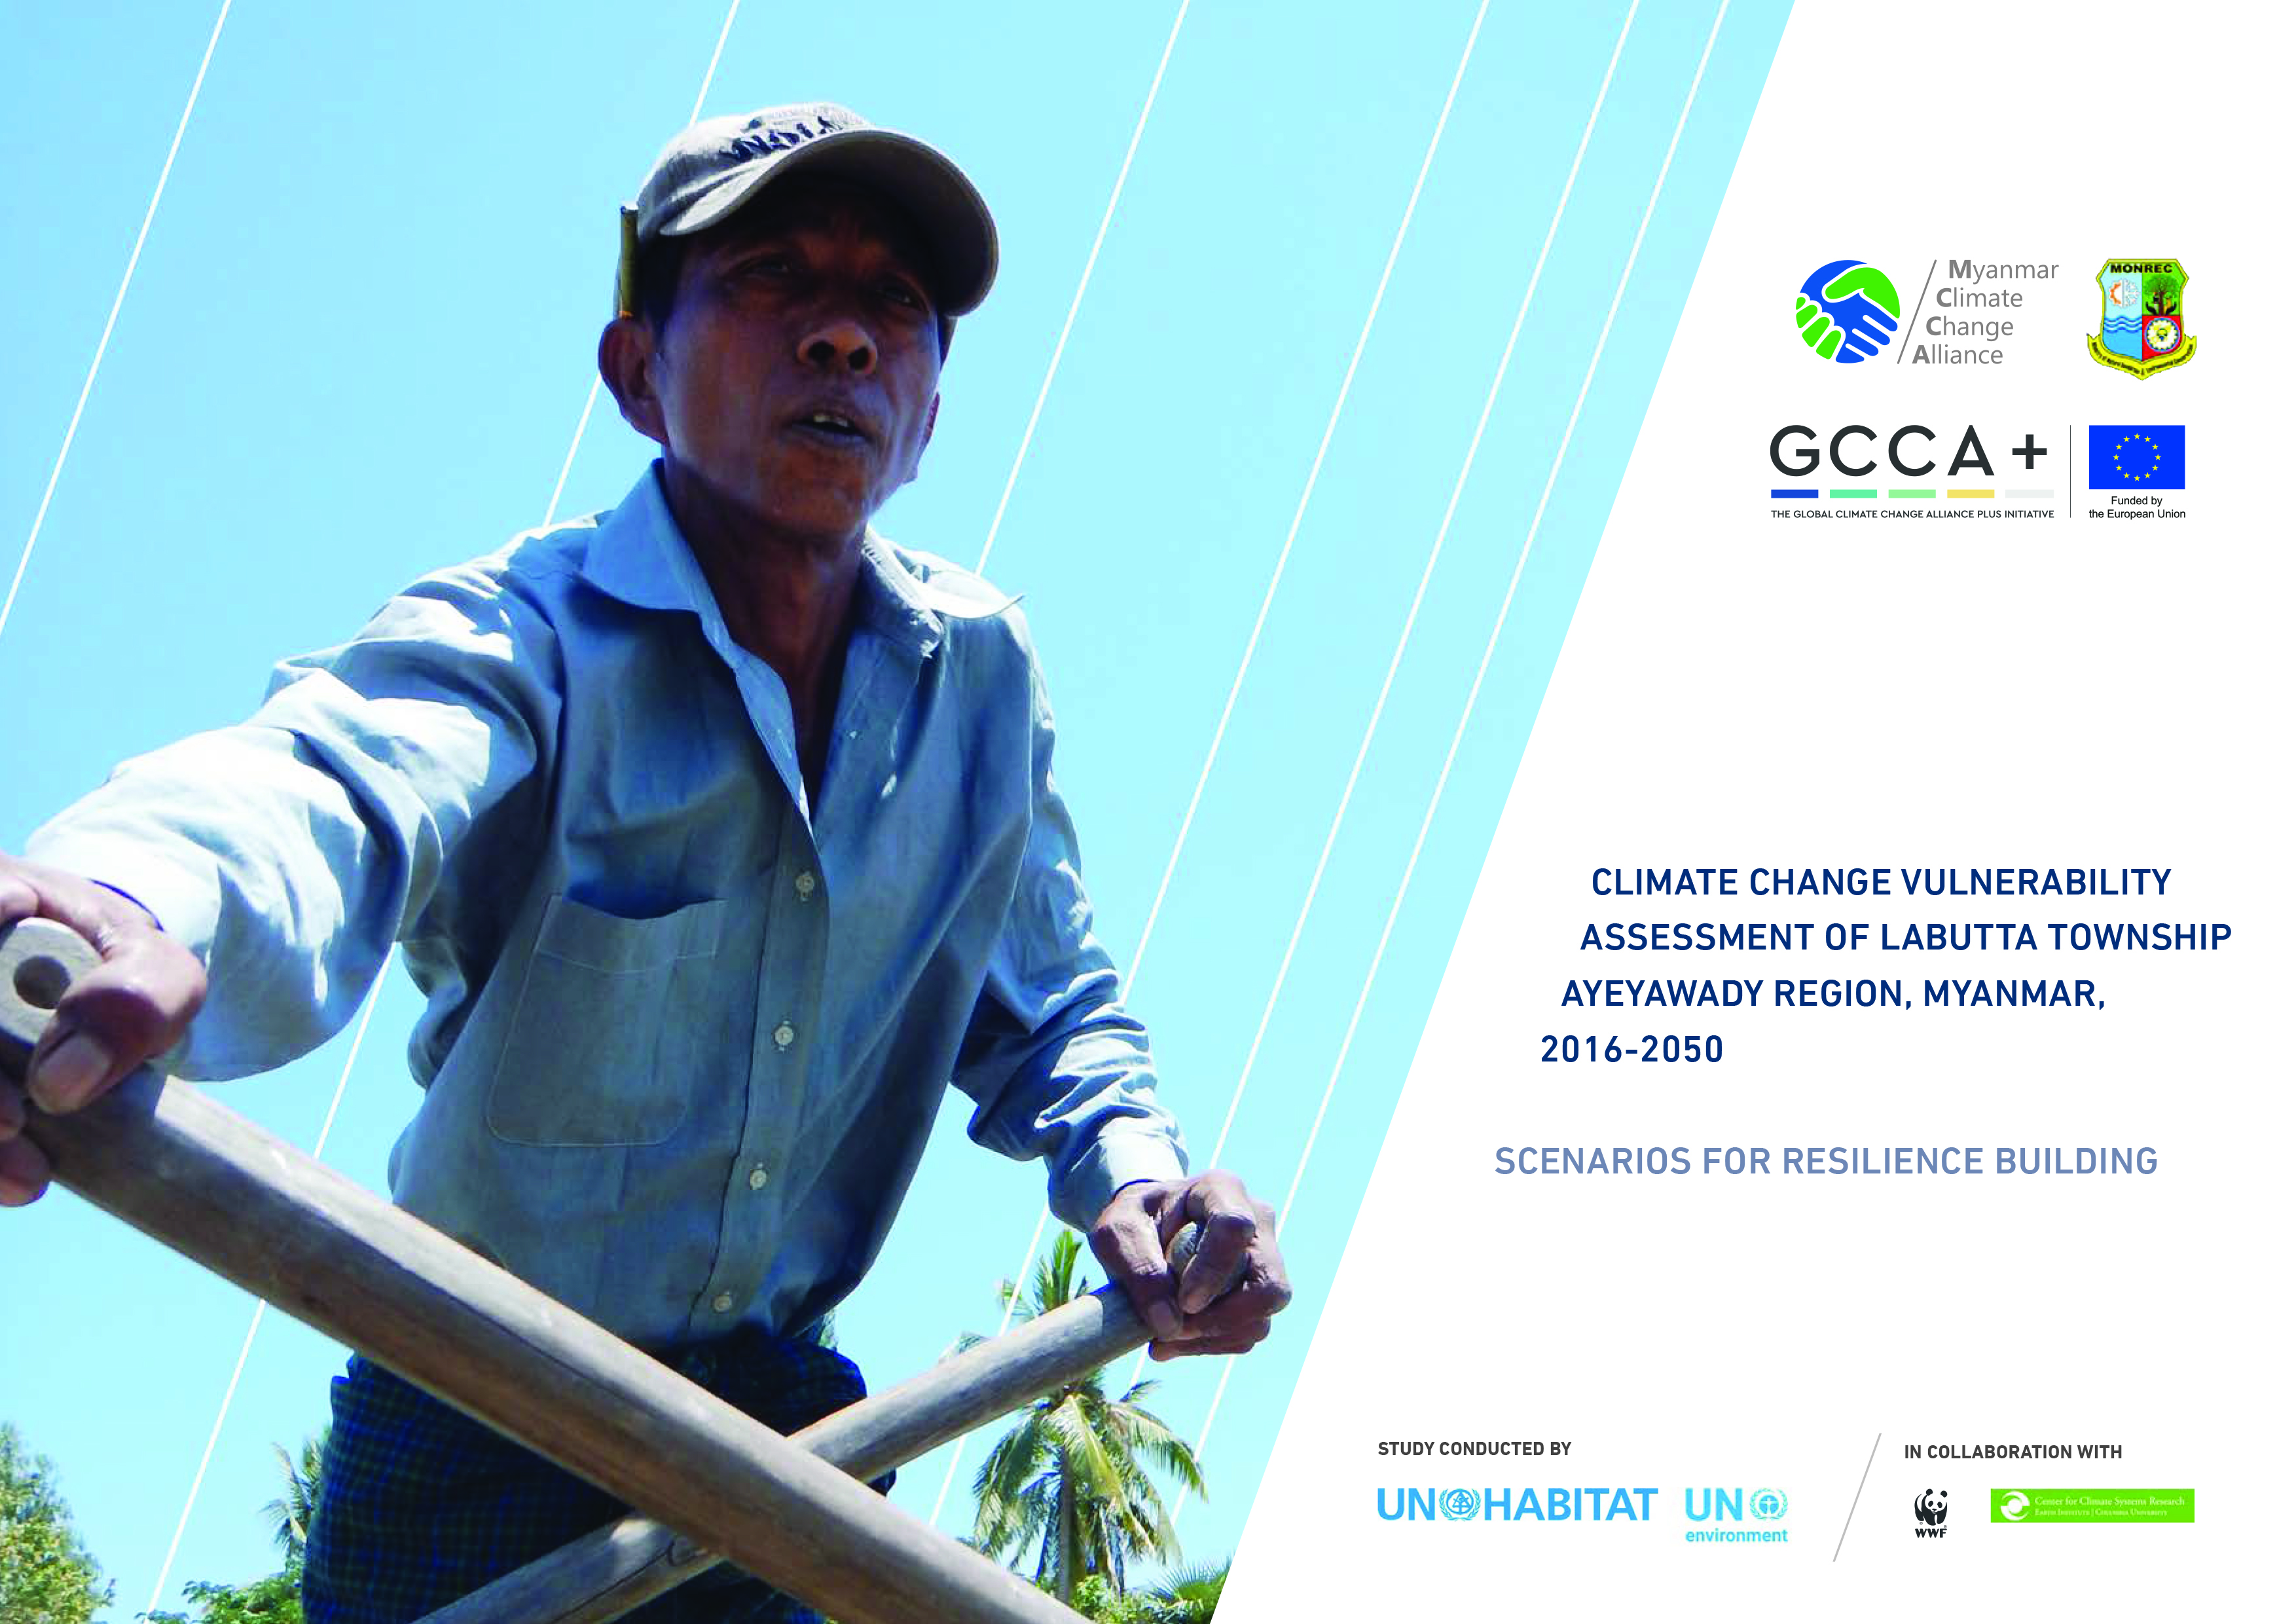 Climate Change Vulnerability Assessment of Labutta Township, Ayeyarwady Region, Myanmar, 2016 – 2050 (Scenarios for Resilience Building)